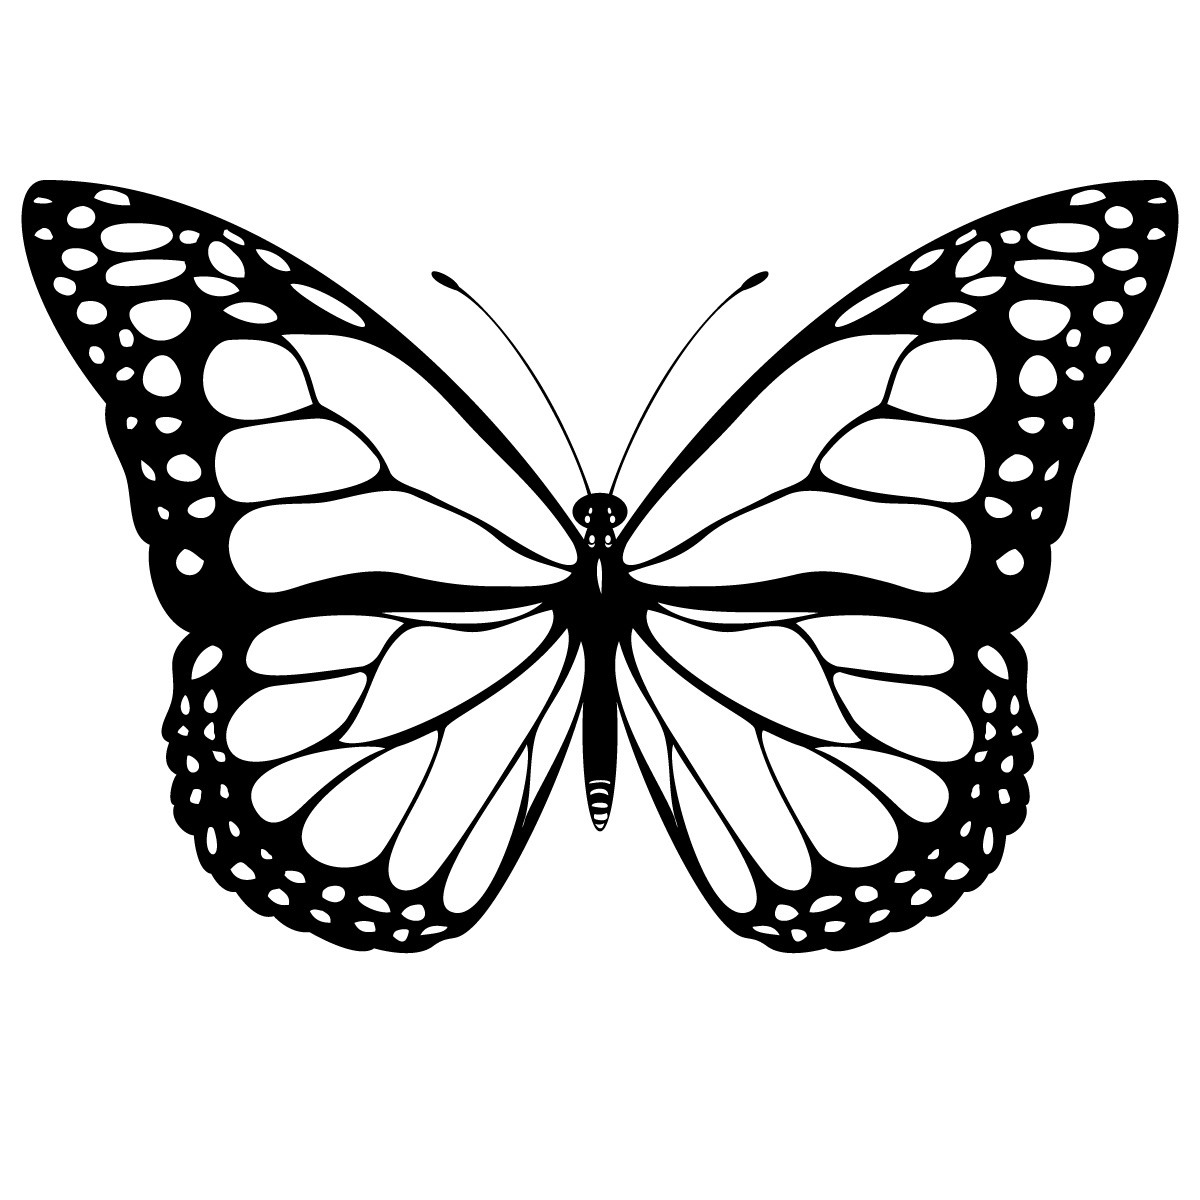 printable butterfly coloring sheets coloring pages butterfly free printable coloring pages sheets coloring butterfly printable